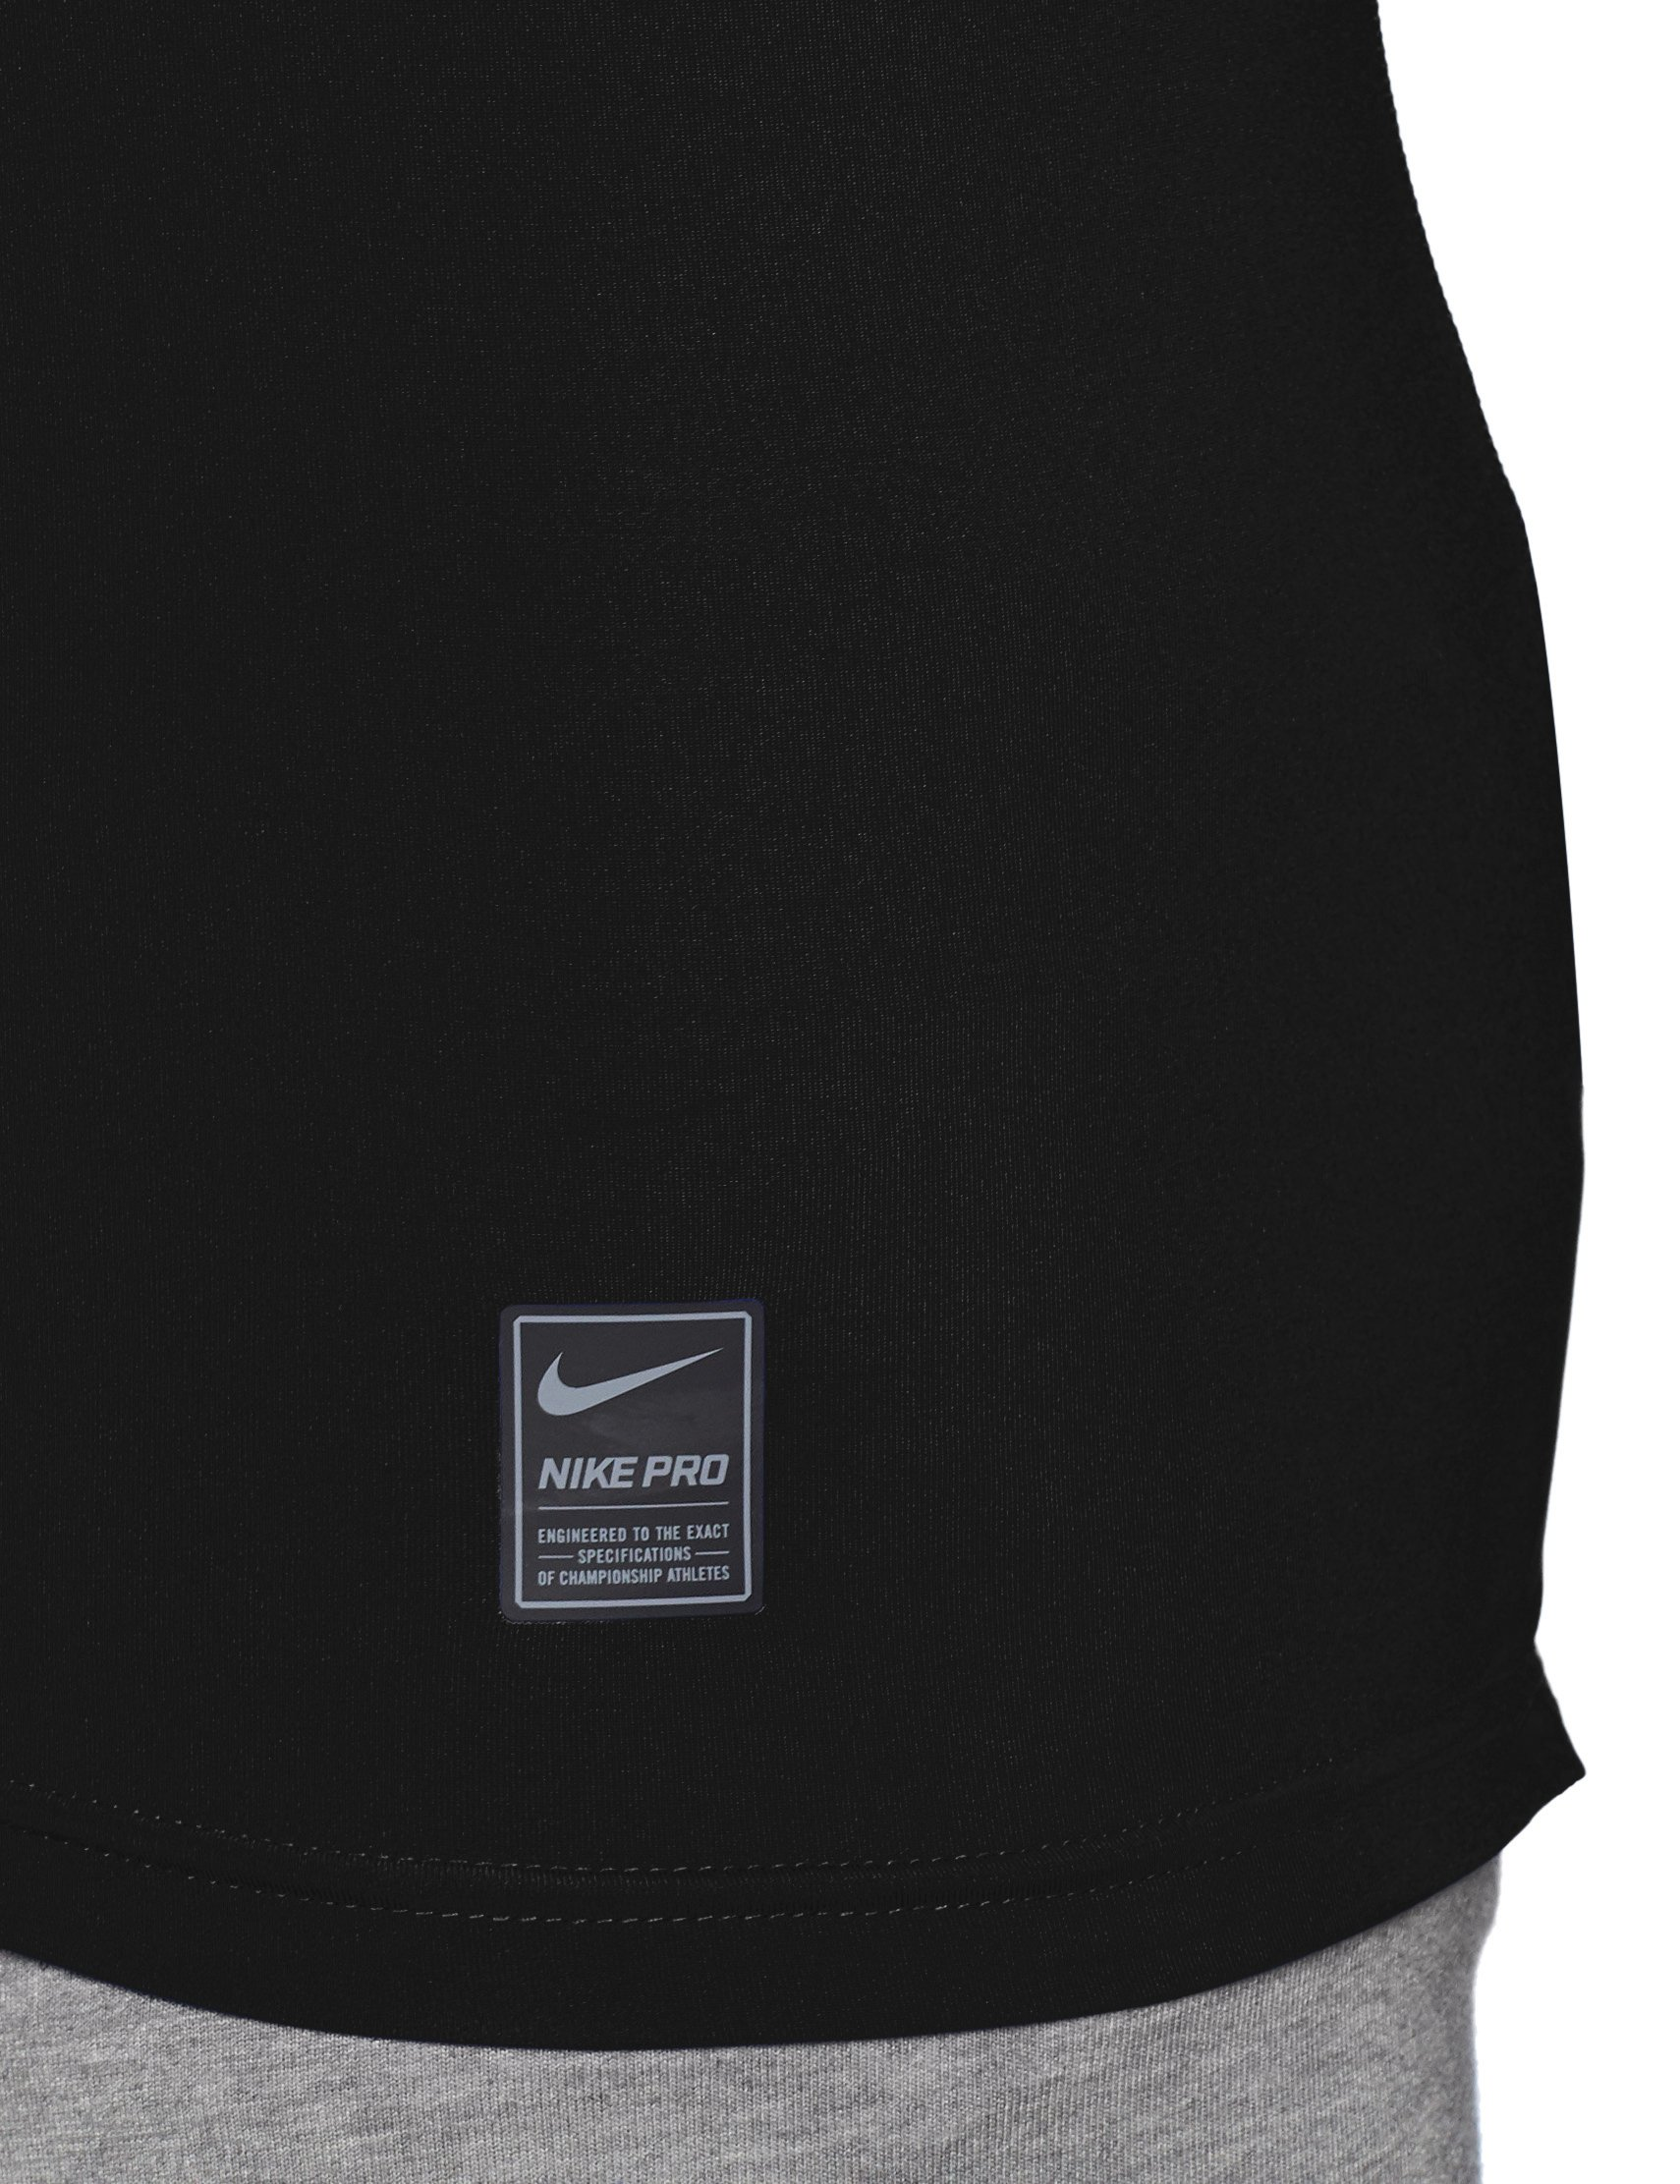 Nike Pro Longsleeve Compression Shirt (Black, M) by Nike (Image #3)